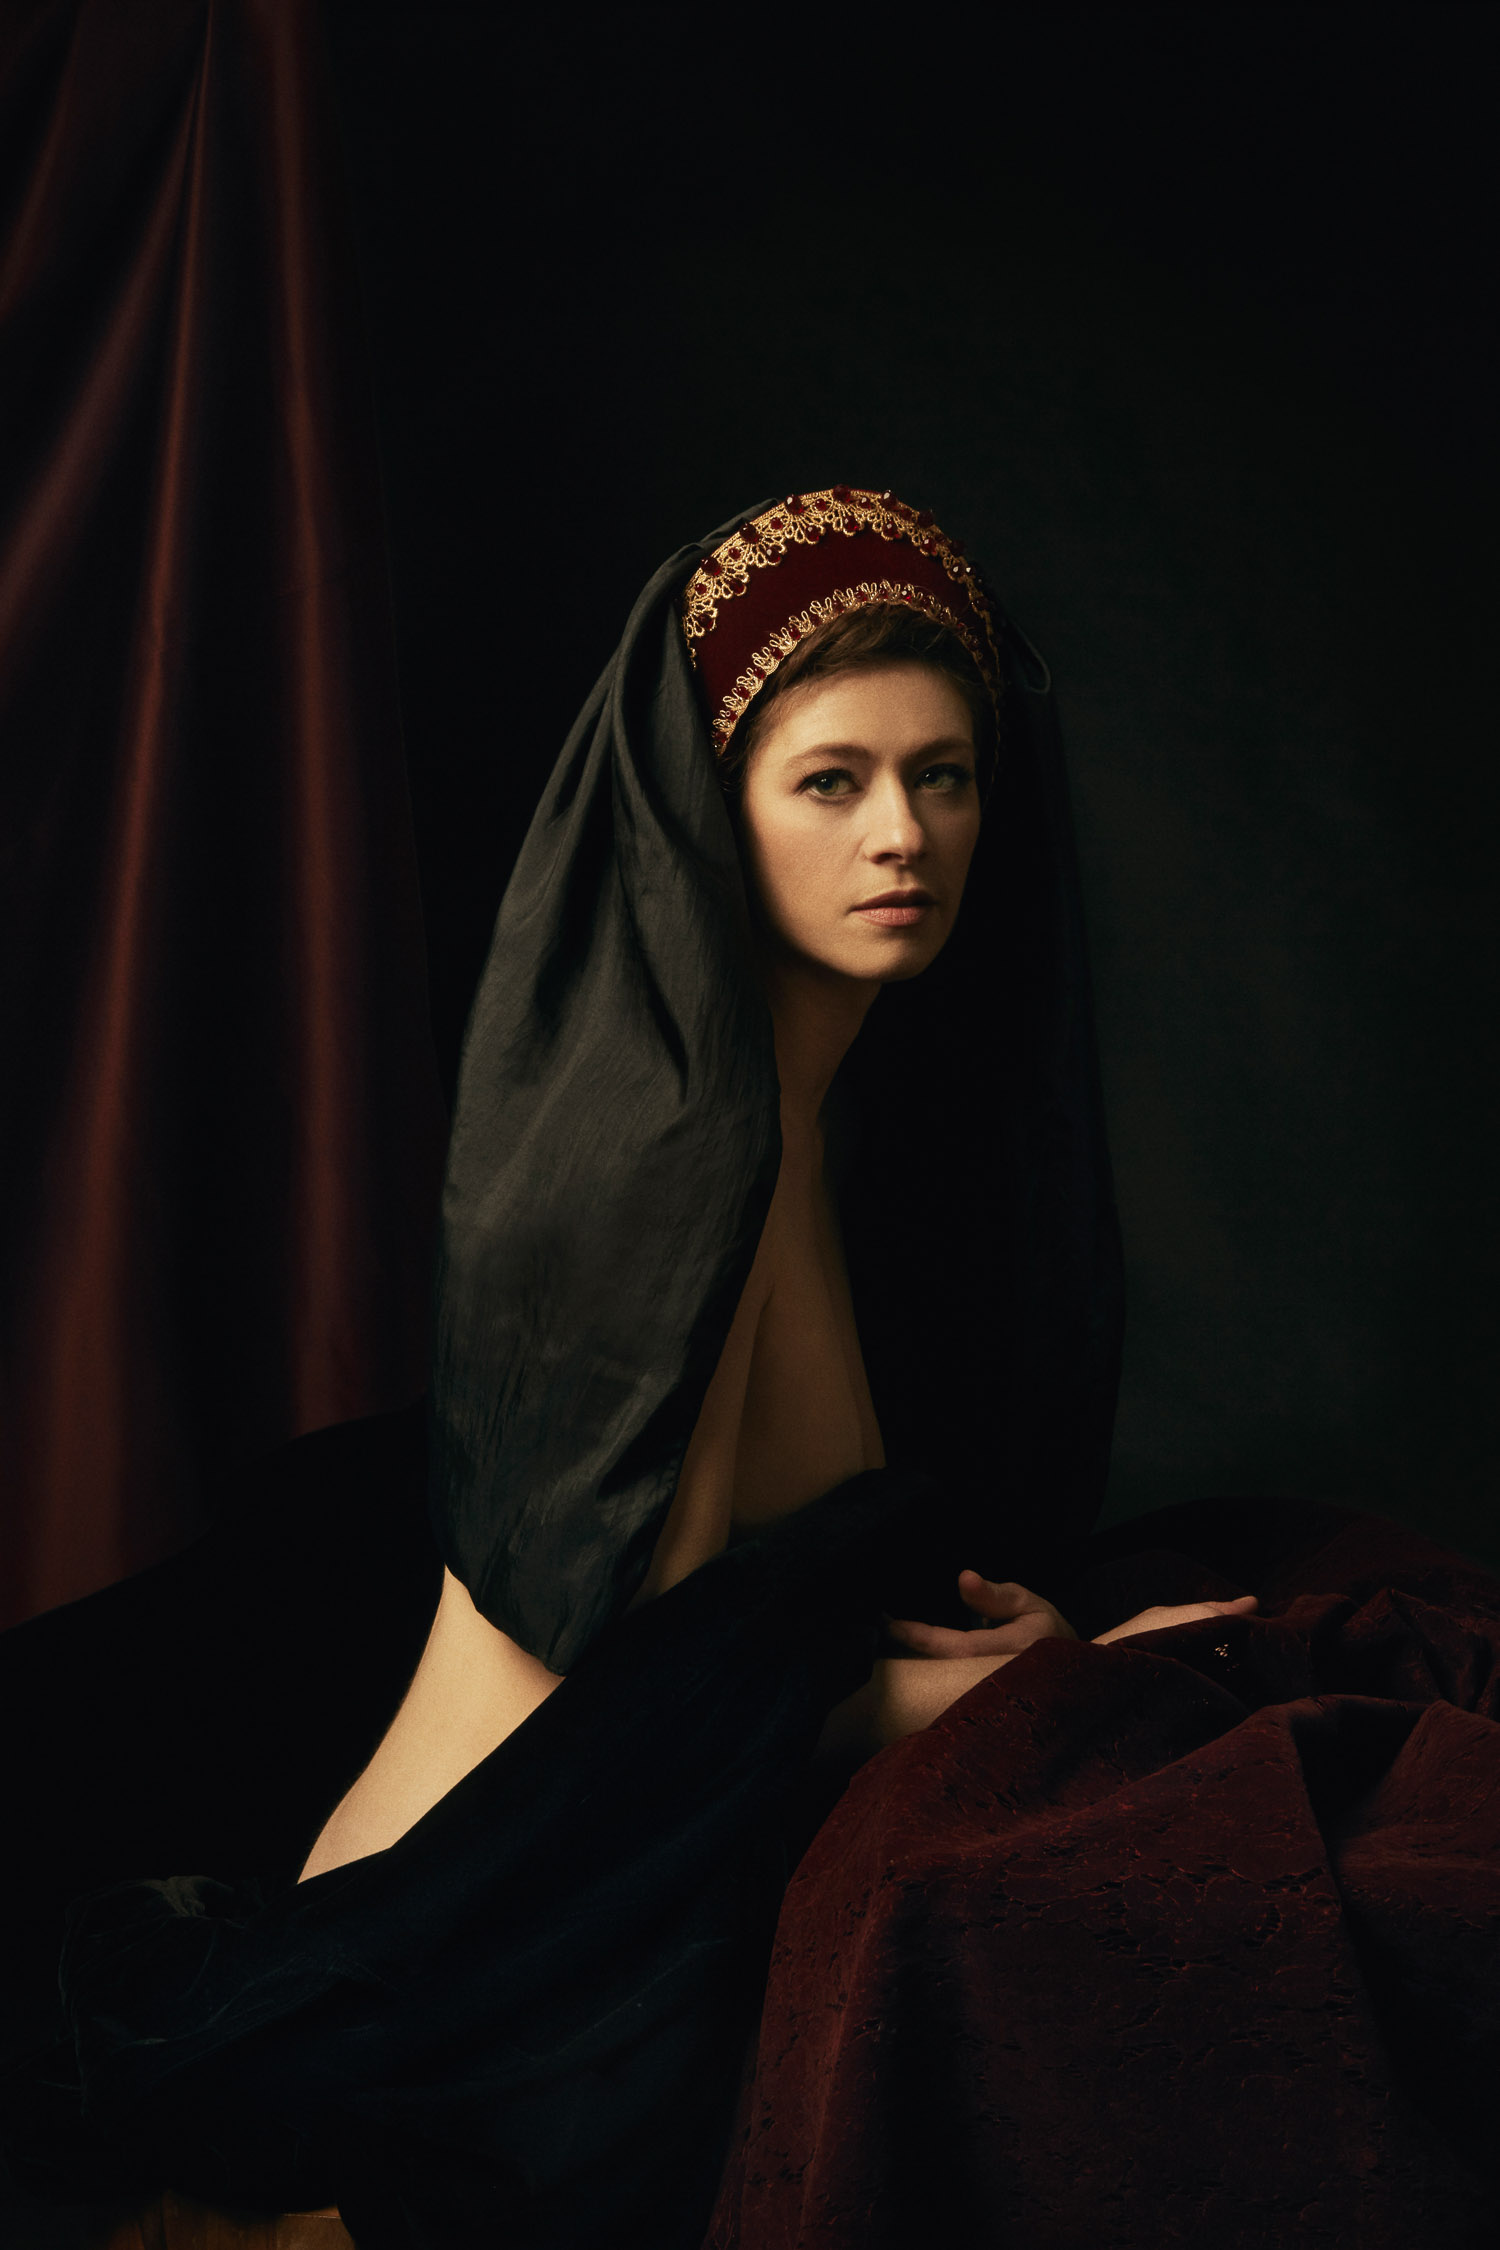 Renaissance themed photography of a woman in a French hood